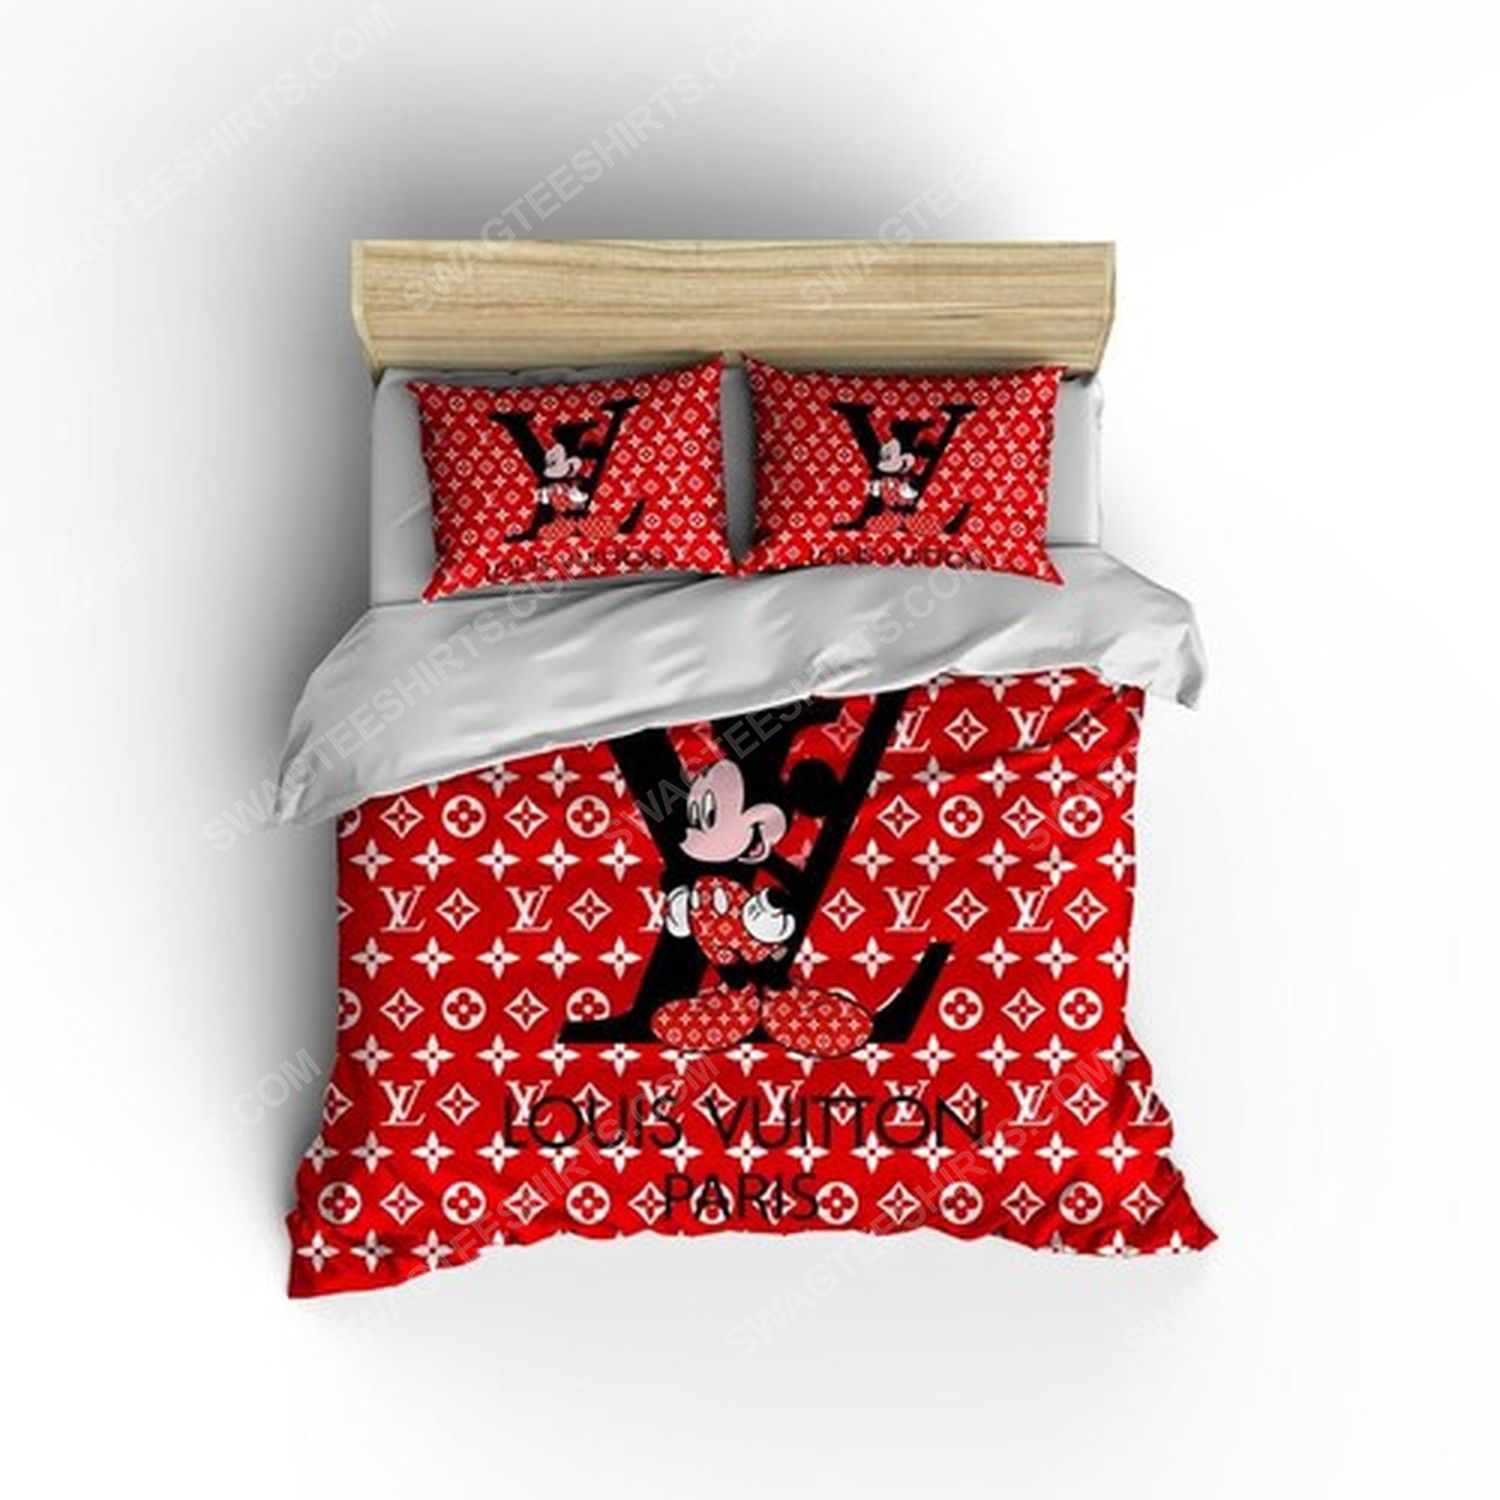 Lv and mickey mouse full print duvet cover bedding set 2 - Copy